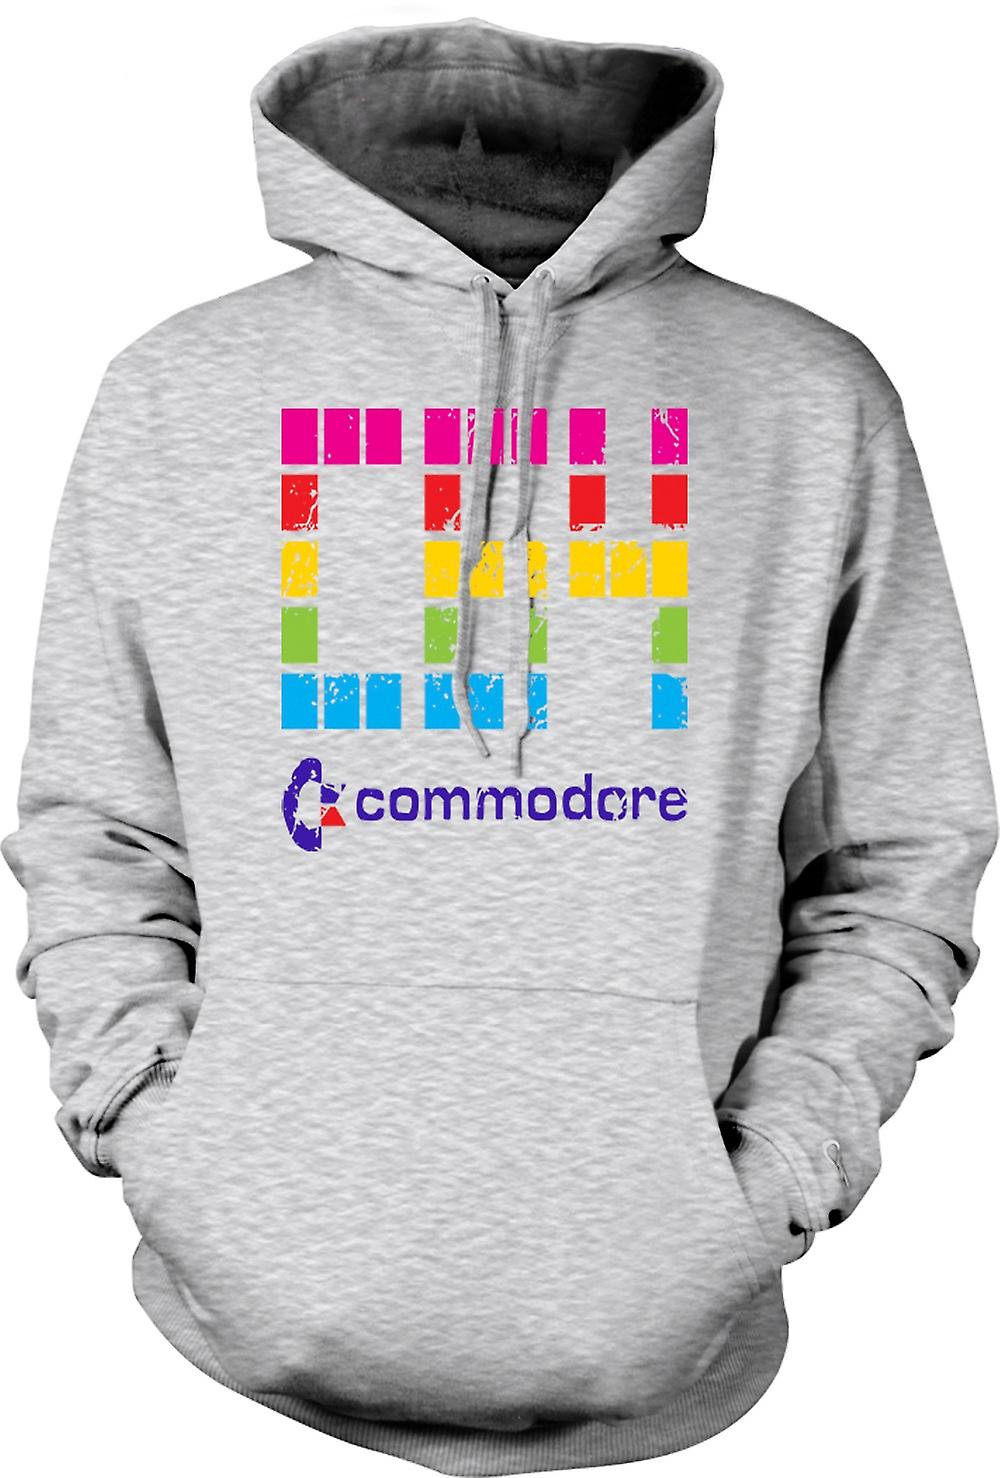 Mens Hoodie - Commodore C64 - Retro computergames - Funny